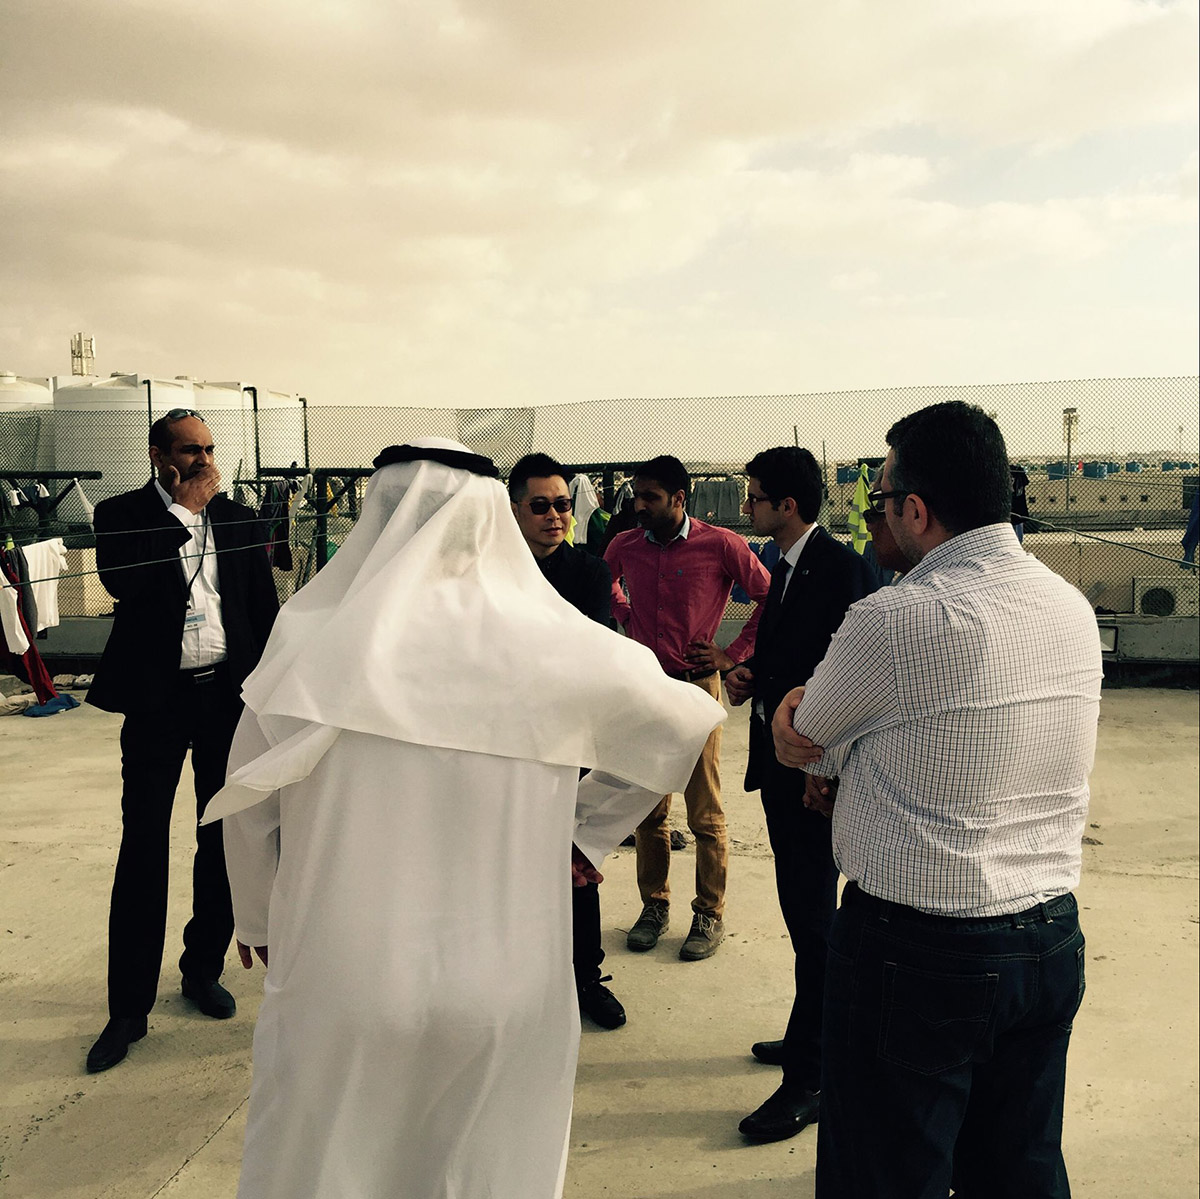 Mr Cool Solar Air Conditioner installed at labour camp in UAE